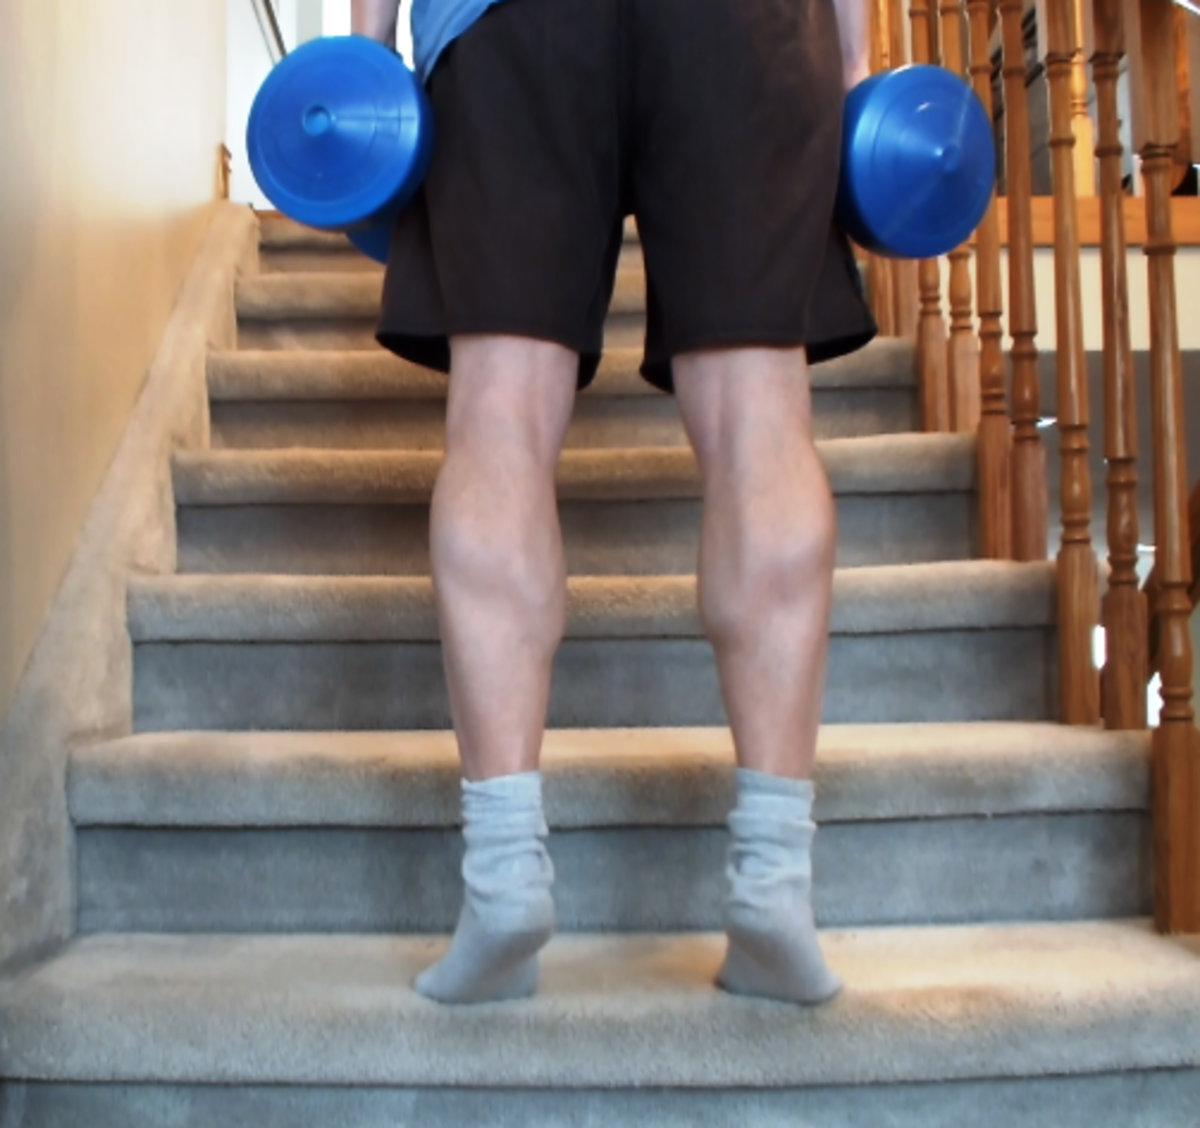 Doing calf raises on the stairs